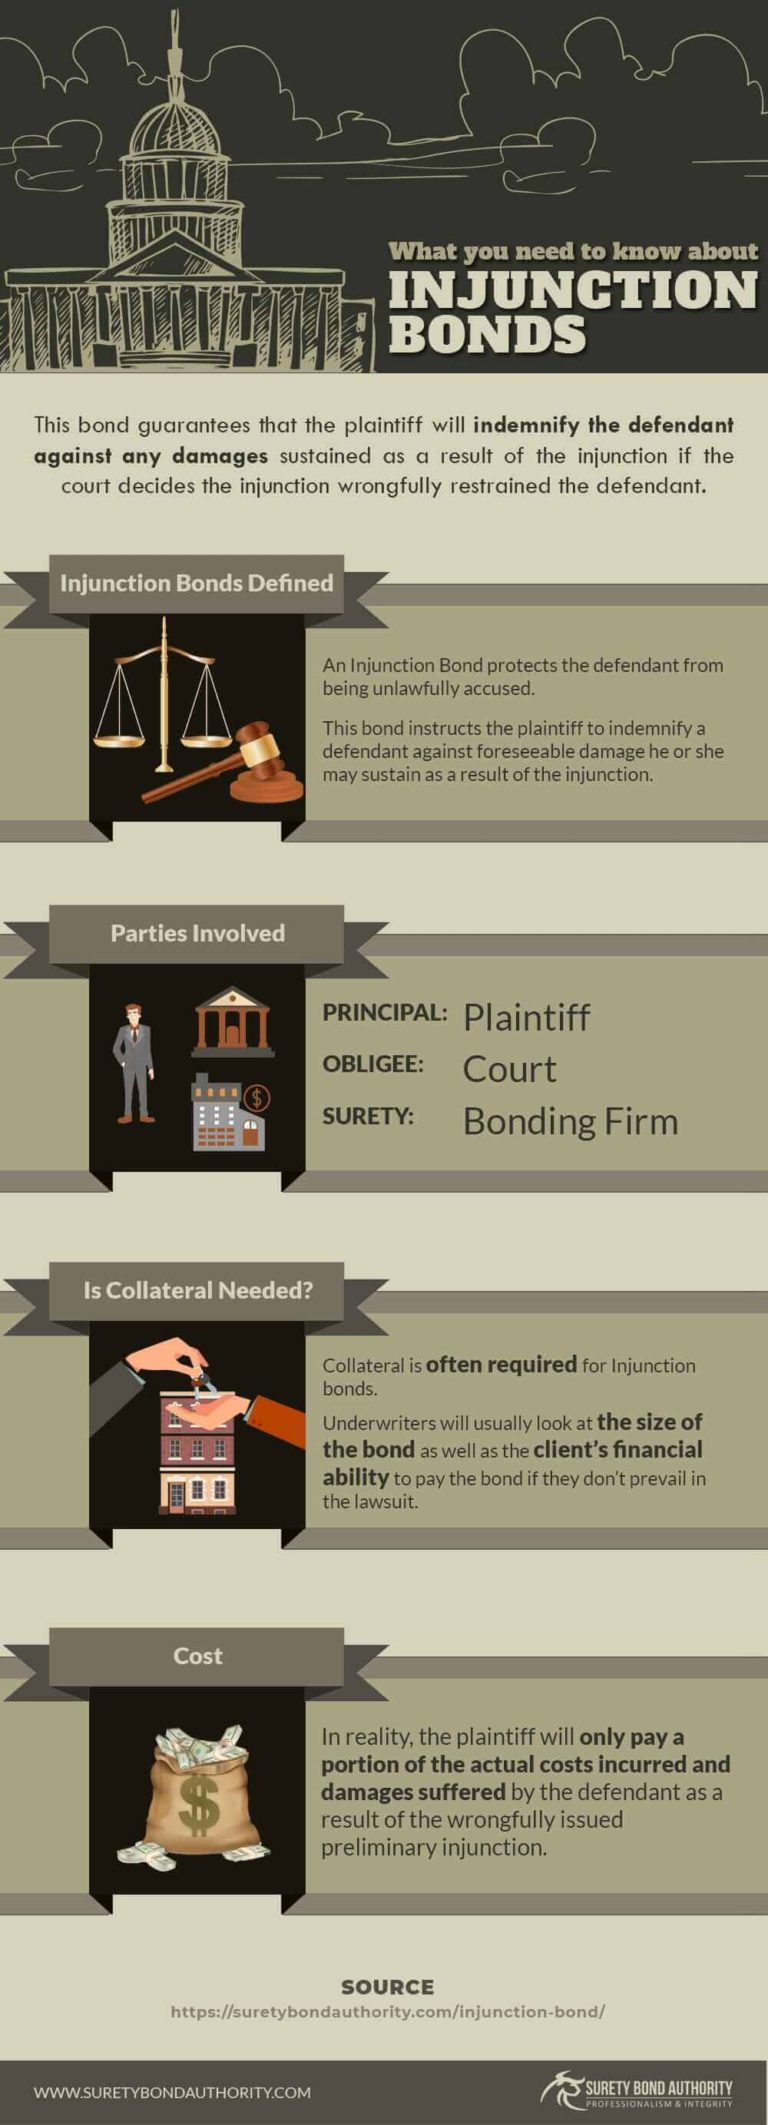 Injunction Bond Infographic